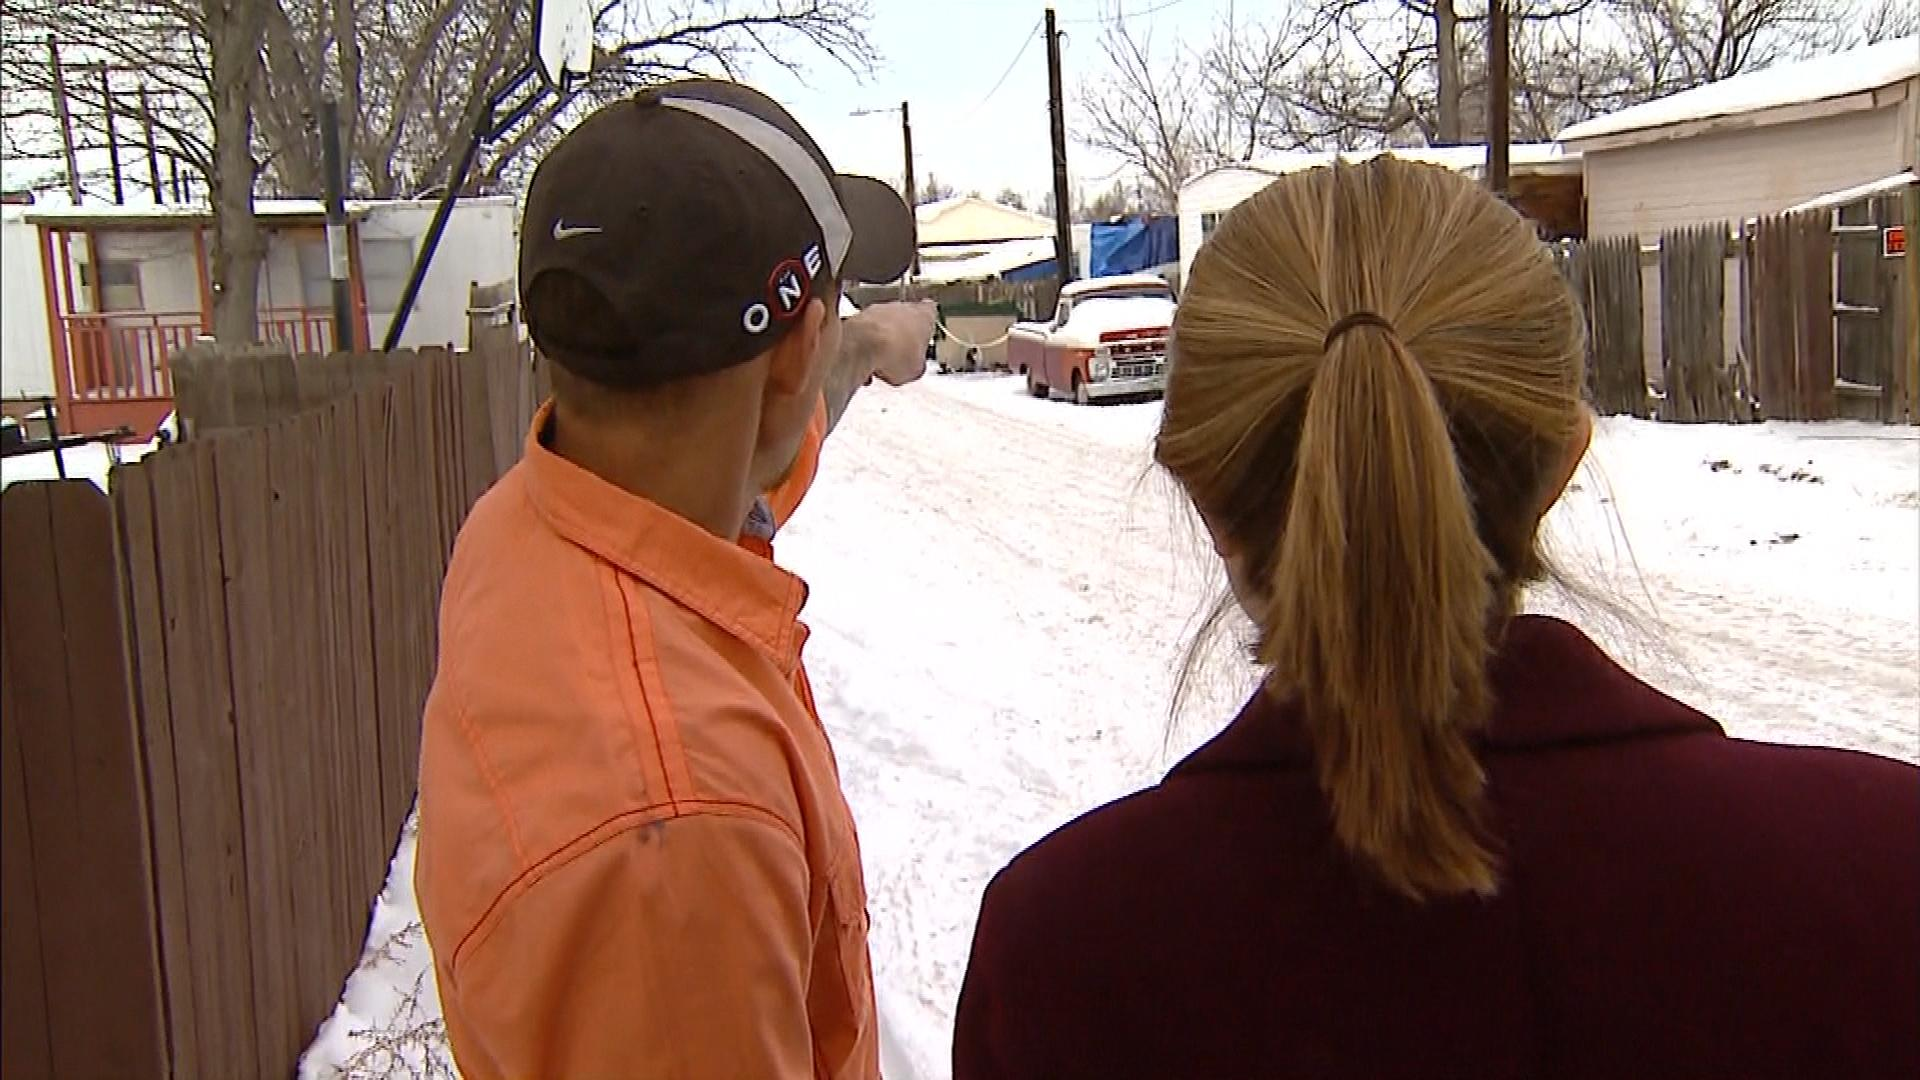 Sean Stoos shows CBS4's Lauren DiSpirito the distance between his home and the fire (credit: CBS)